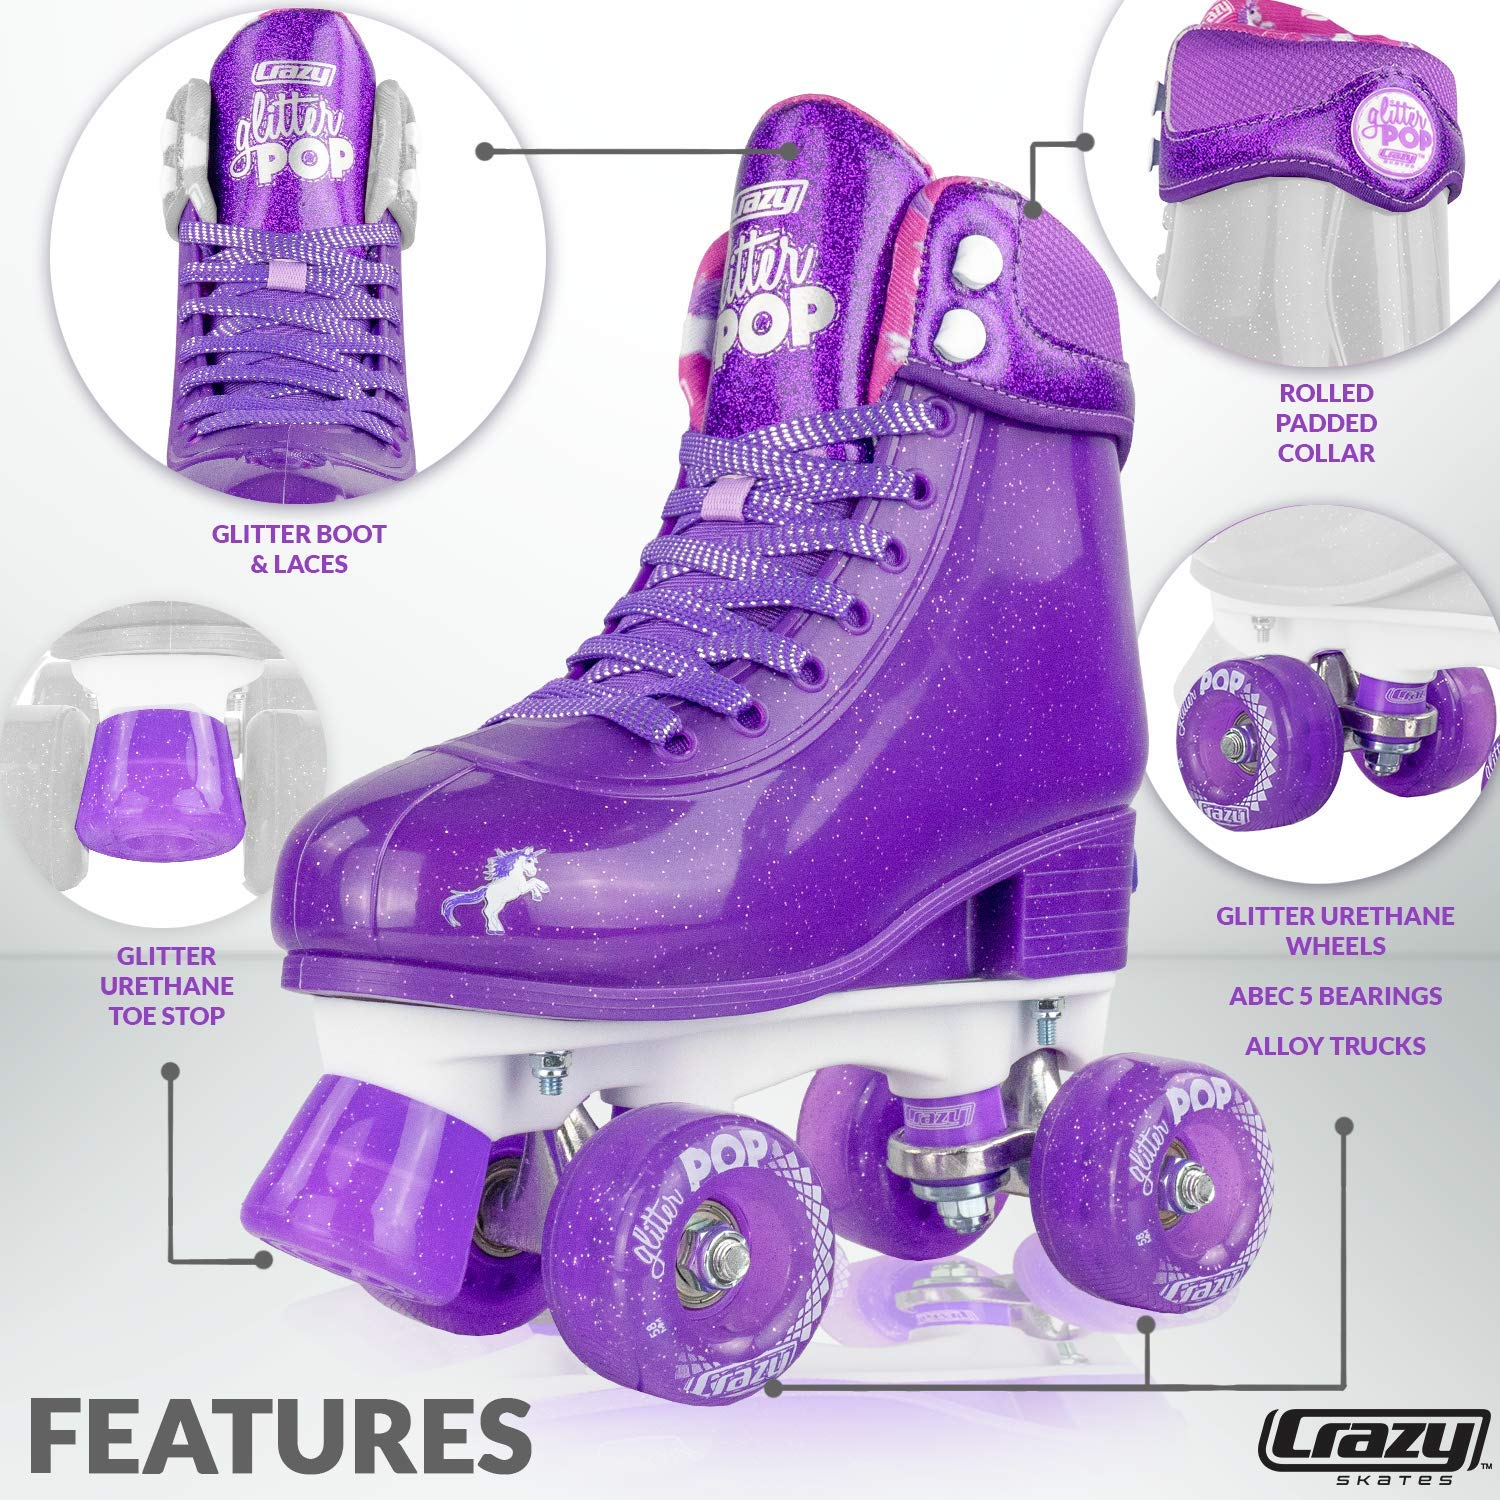 Crazy Skates Glitter POP Adjustable Roller Skates for Girls and Boys | Size Adjustable Quad Skates That Fit 4 Shoe Sizes | Purple (Sizes 3-6) by Crazy Skates (Image #2)